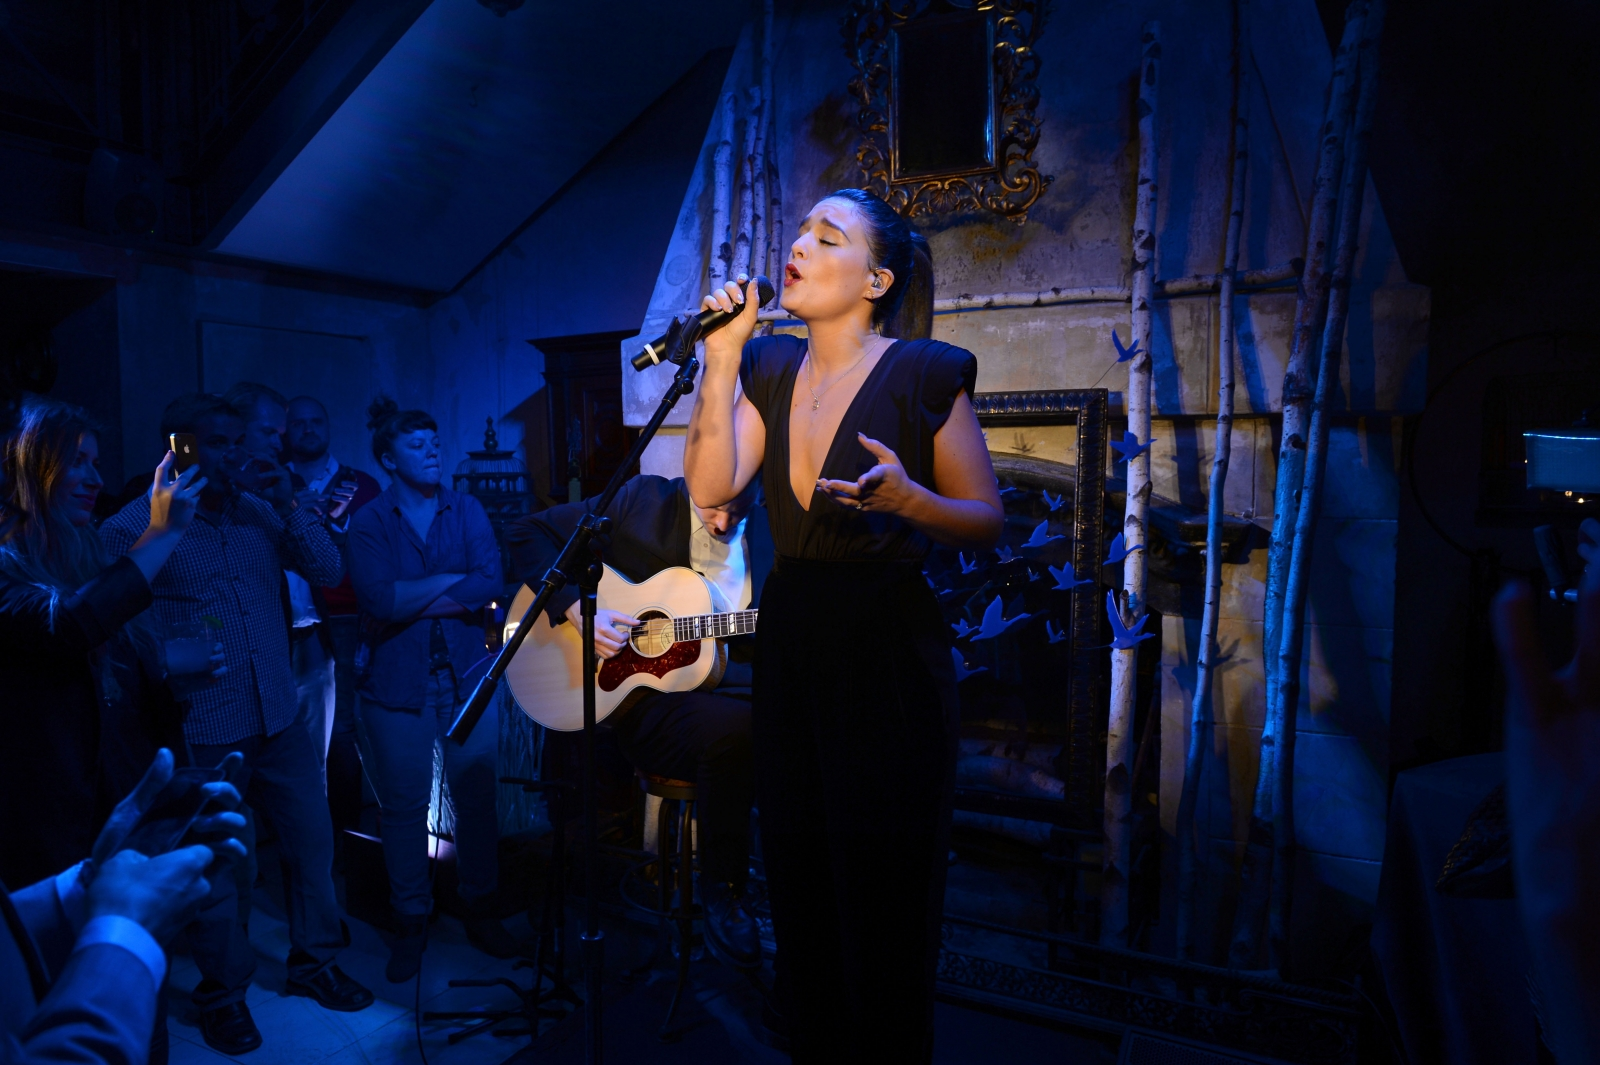 Jessie Ware performing